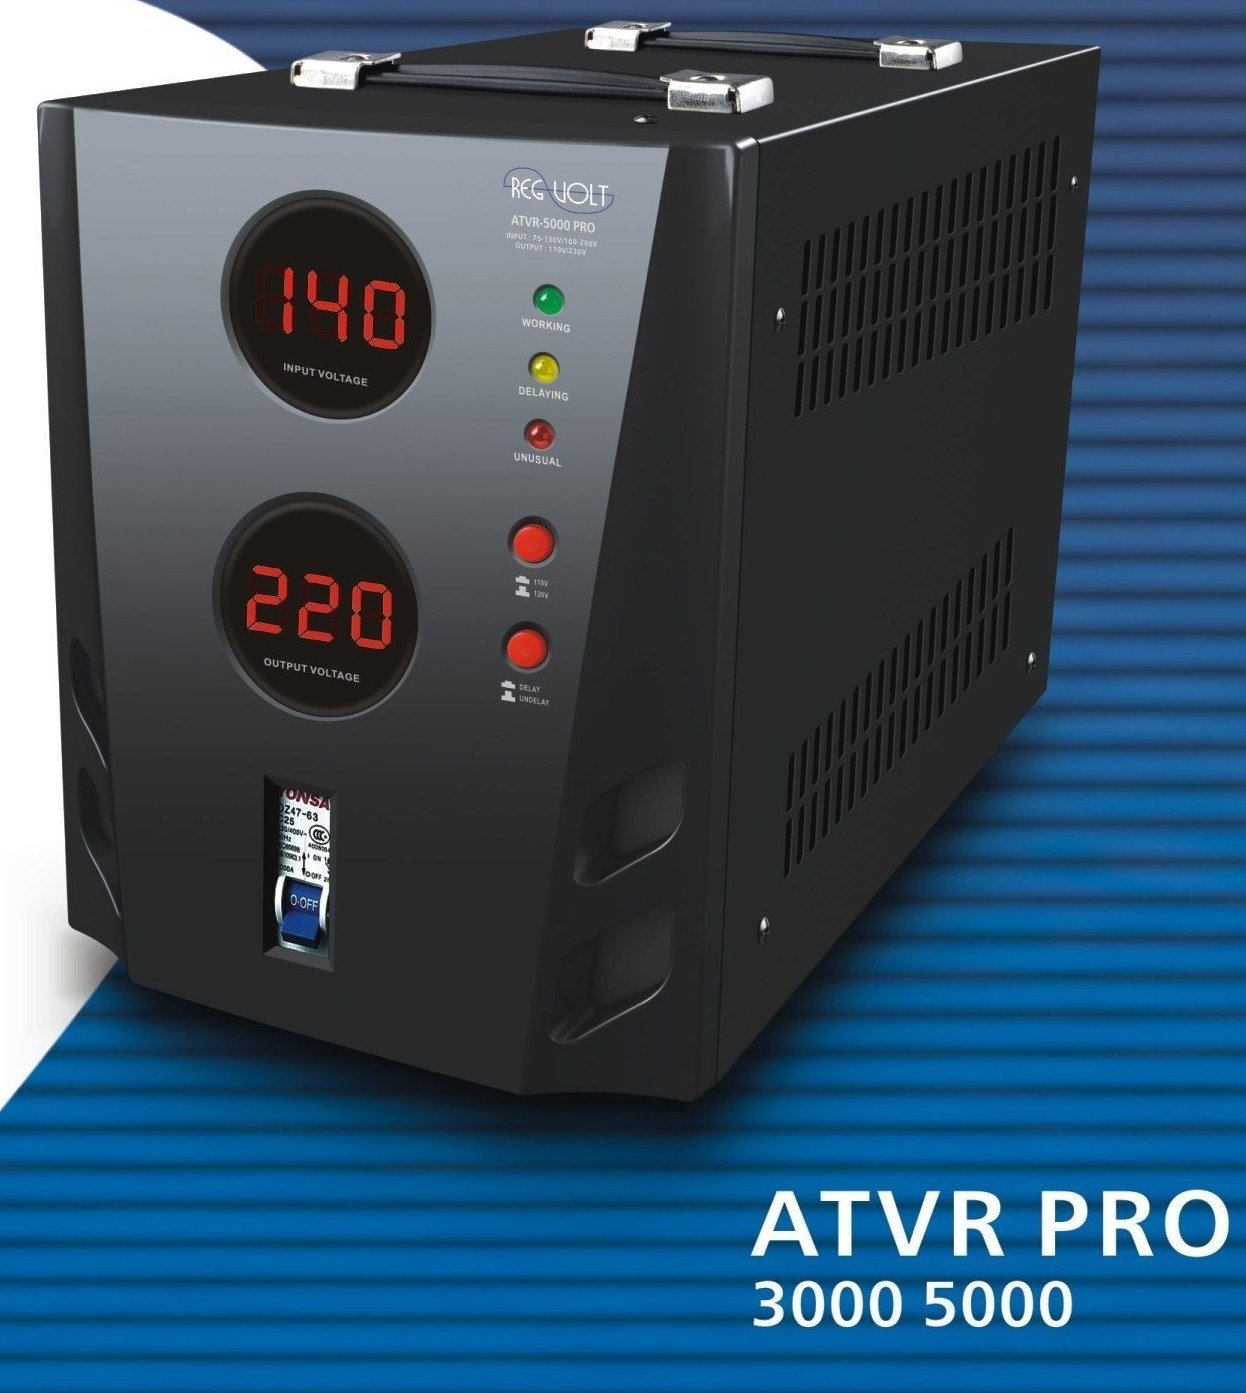 Regvolt ATVR-3000 Deluxe Automatic Converter Transformer – Step Up & Down Functions with Circuit Breaker Protection by REGVOLT